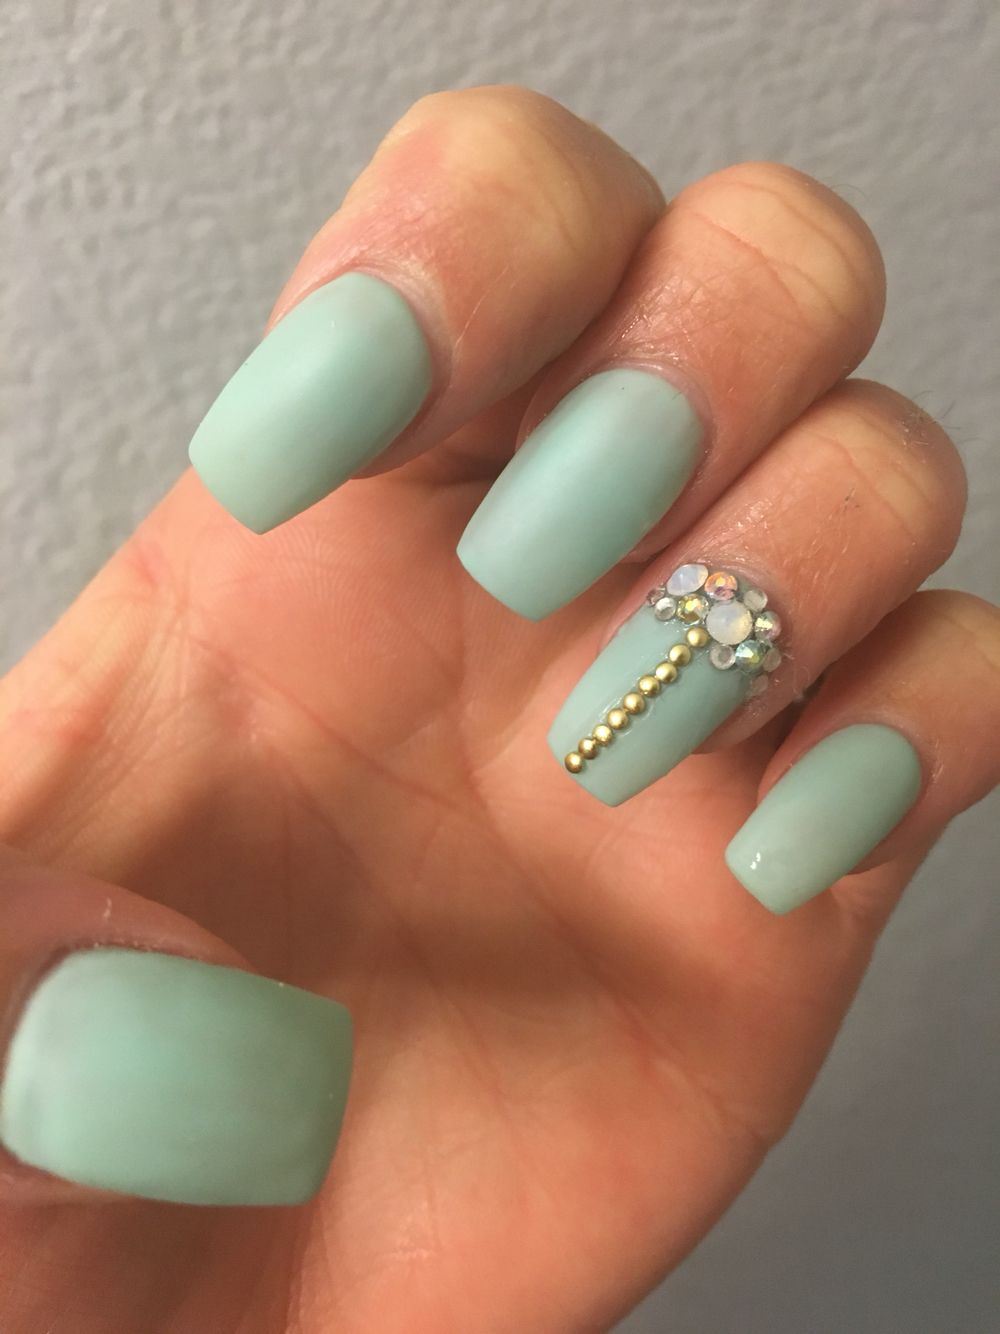 Cute acrylics nails with opal jems,sea foam green or teal | Nails ...